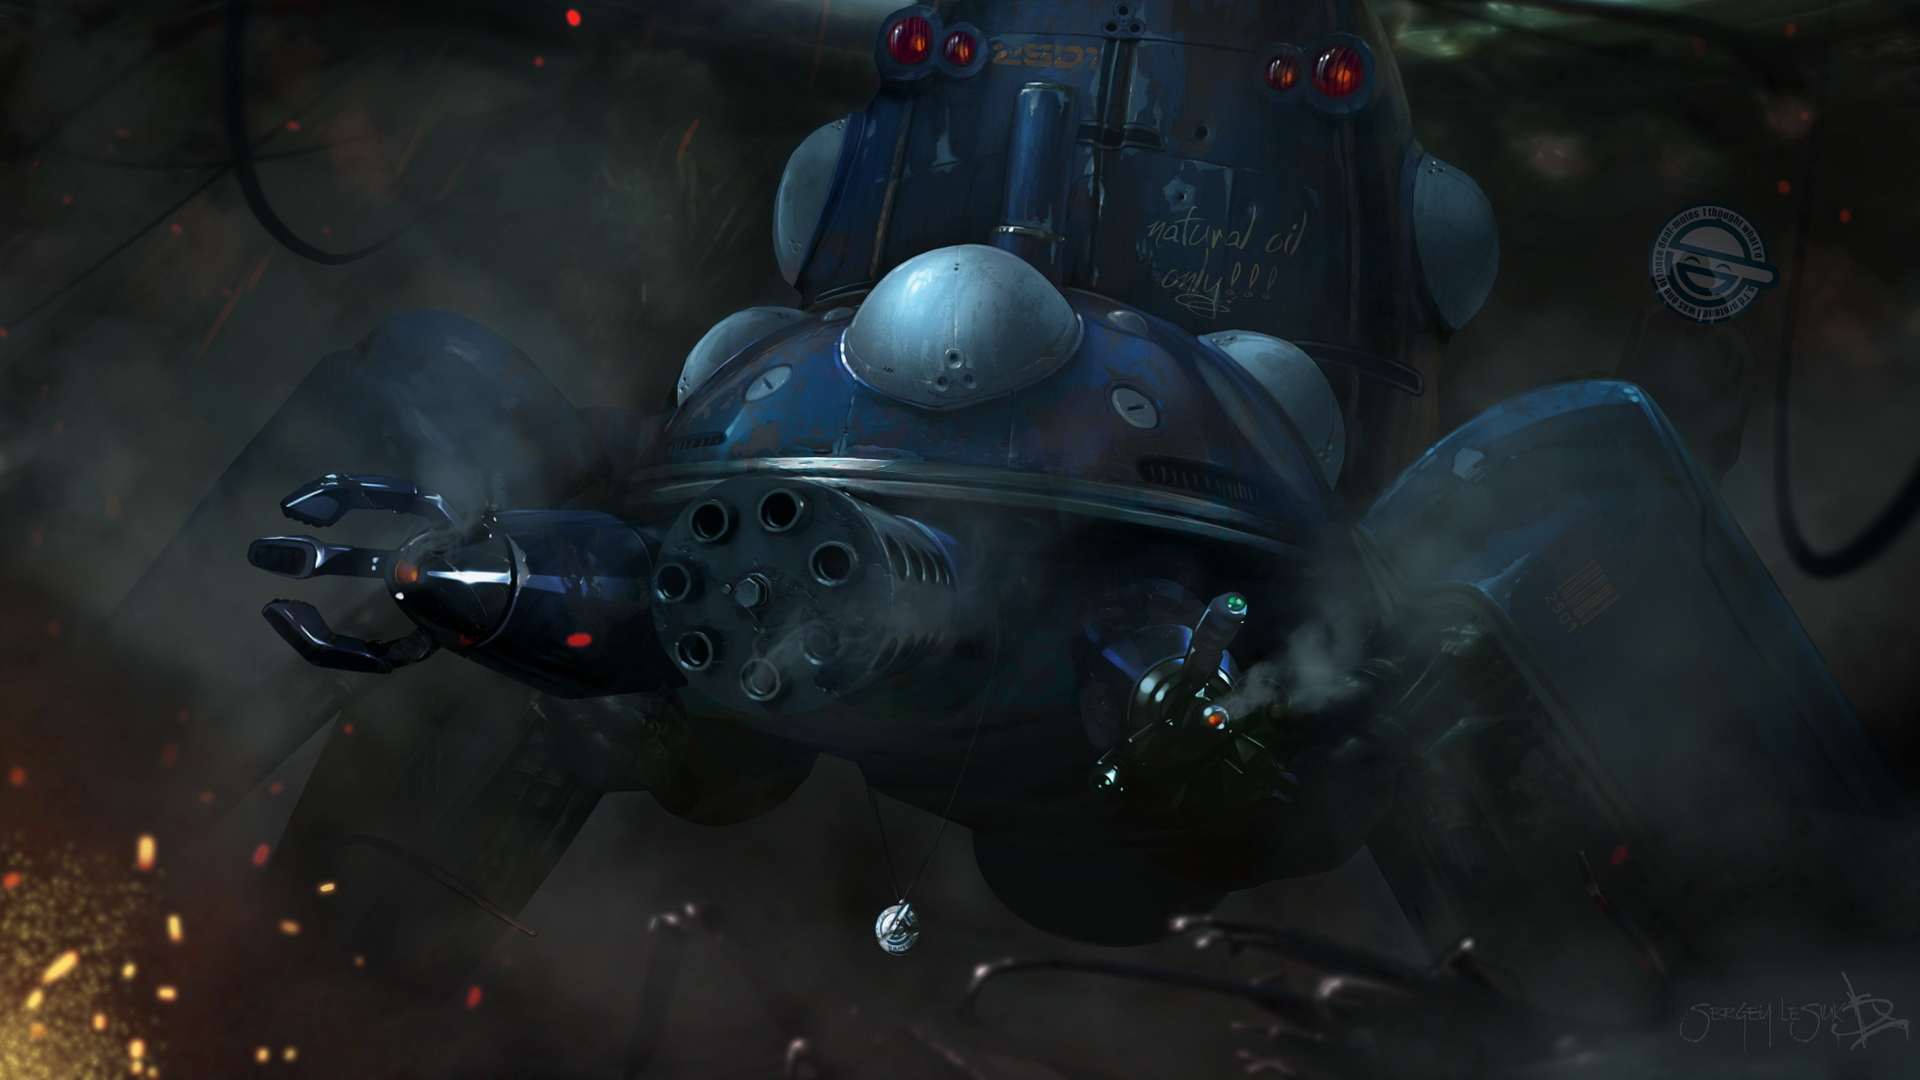 1920x1080 Ghost In The Shell Tachikoma Gun 1080p Laptop Full Hd